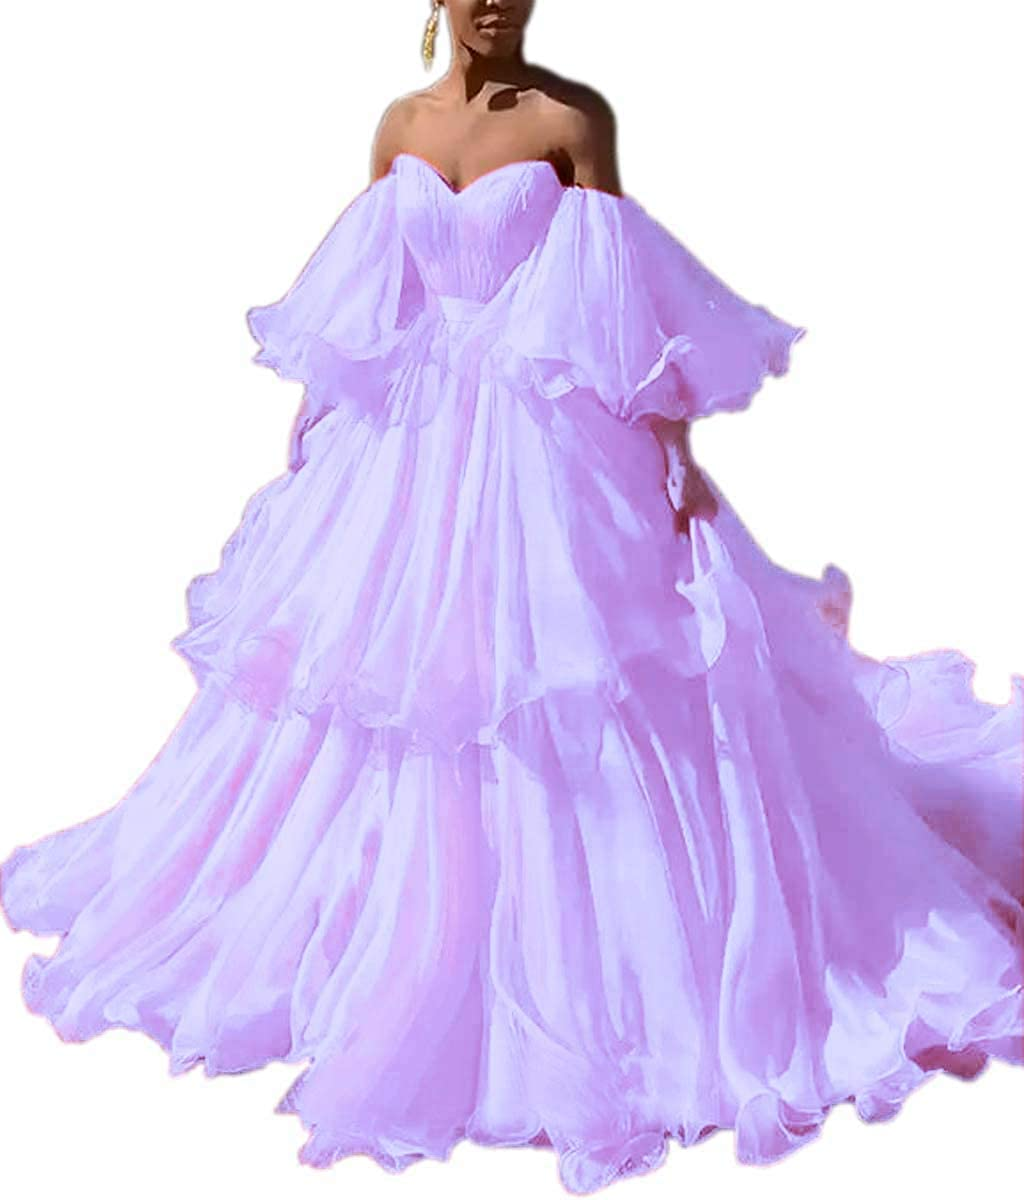 Lavender Mauwey Women's Sweetheart Bell Sleeve Long Ruffles Organza Formal Prom Dresses Wedding Dress Evening Party Gown